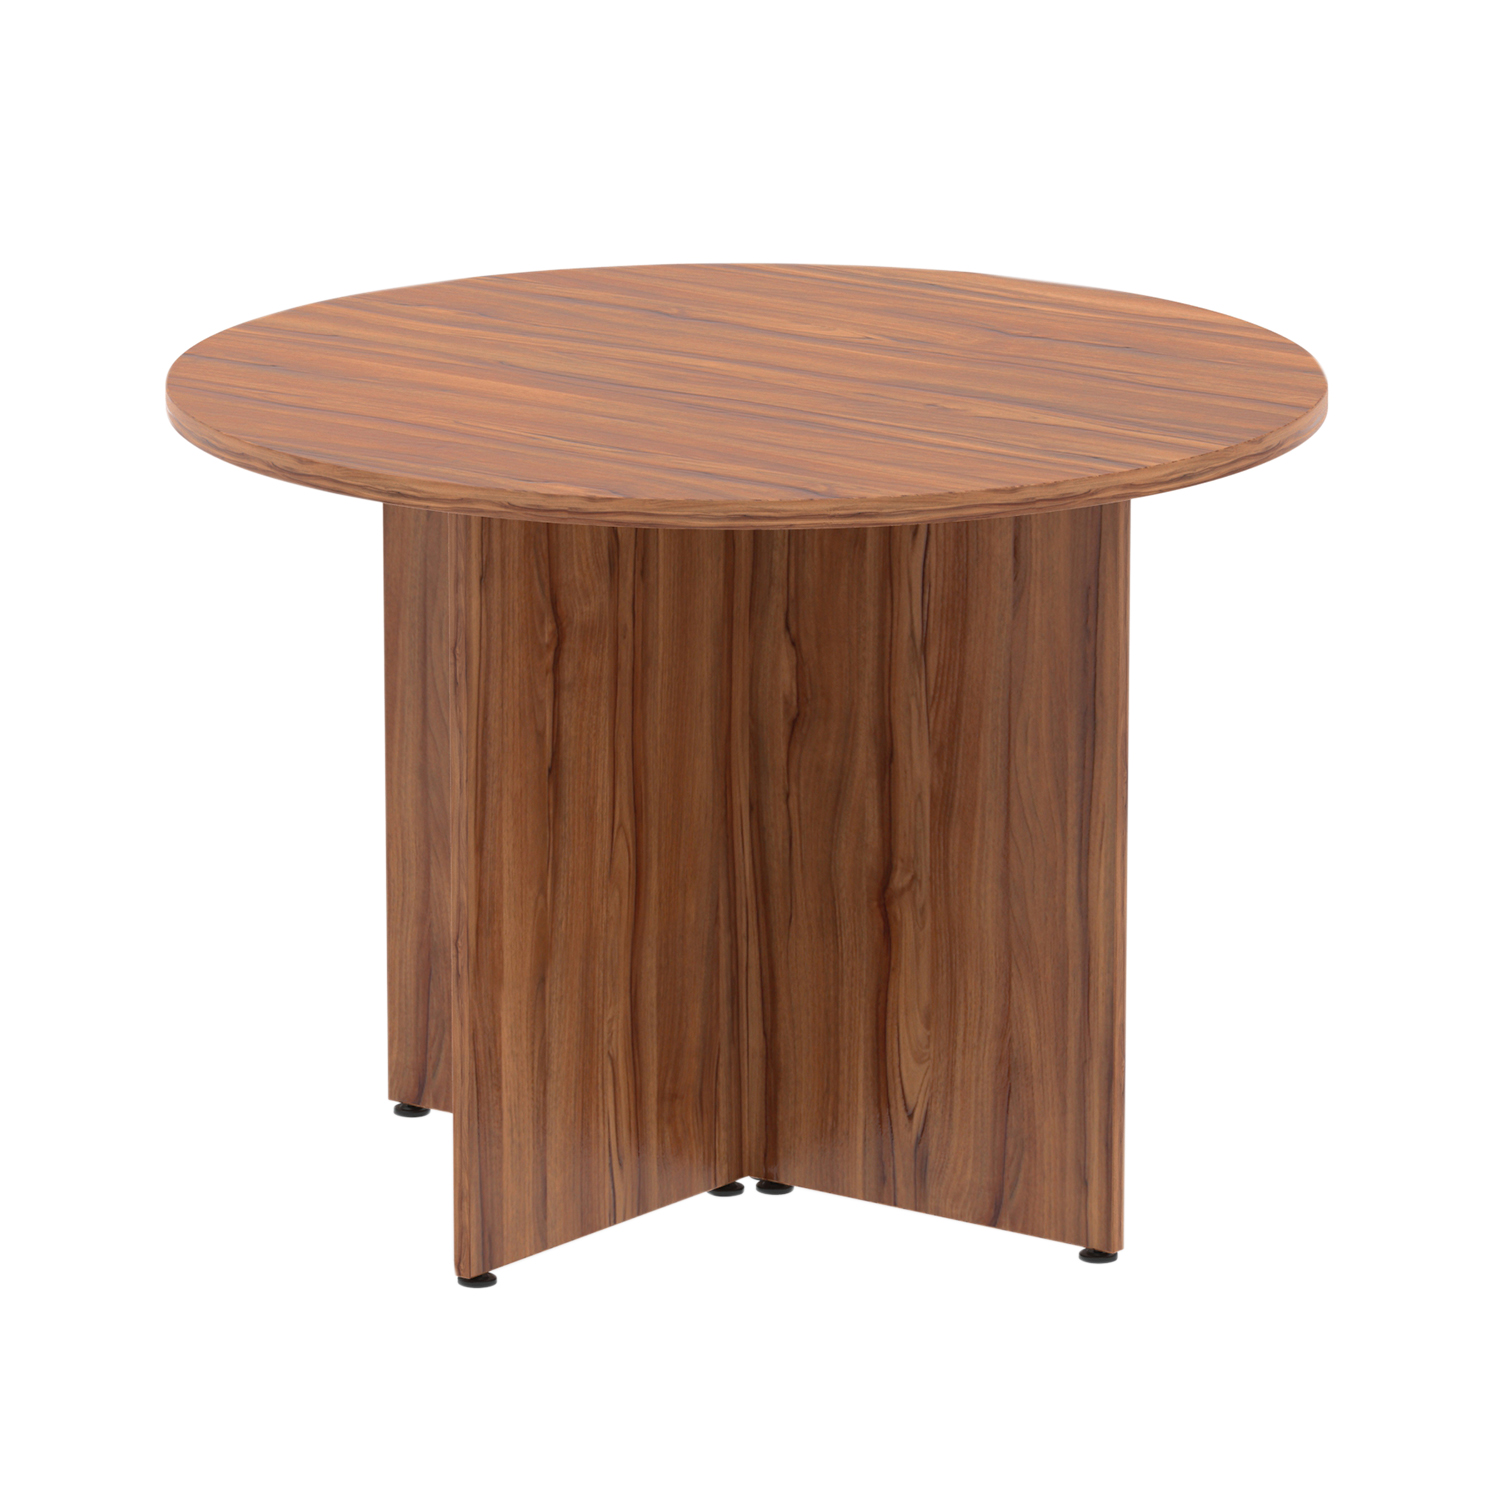 Trexus Circular Table 1200mm Arrowhead Walnut Ref MI002926